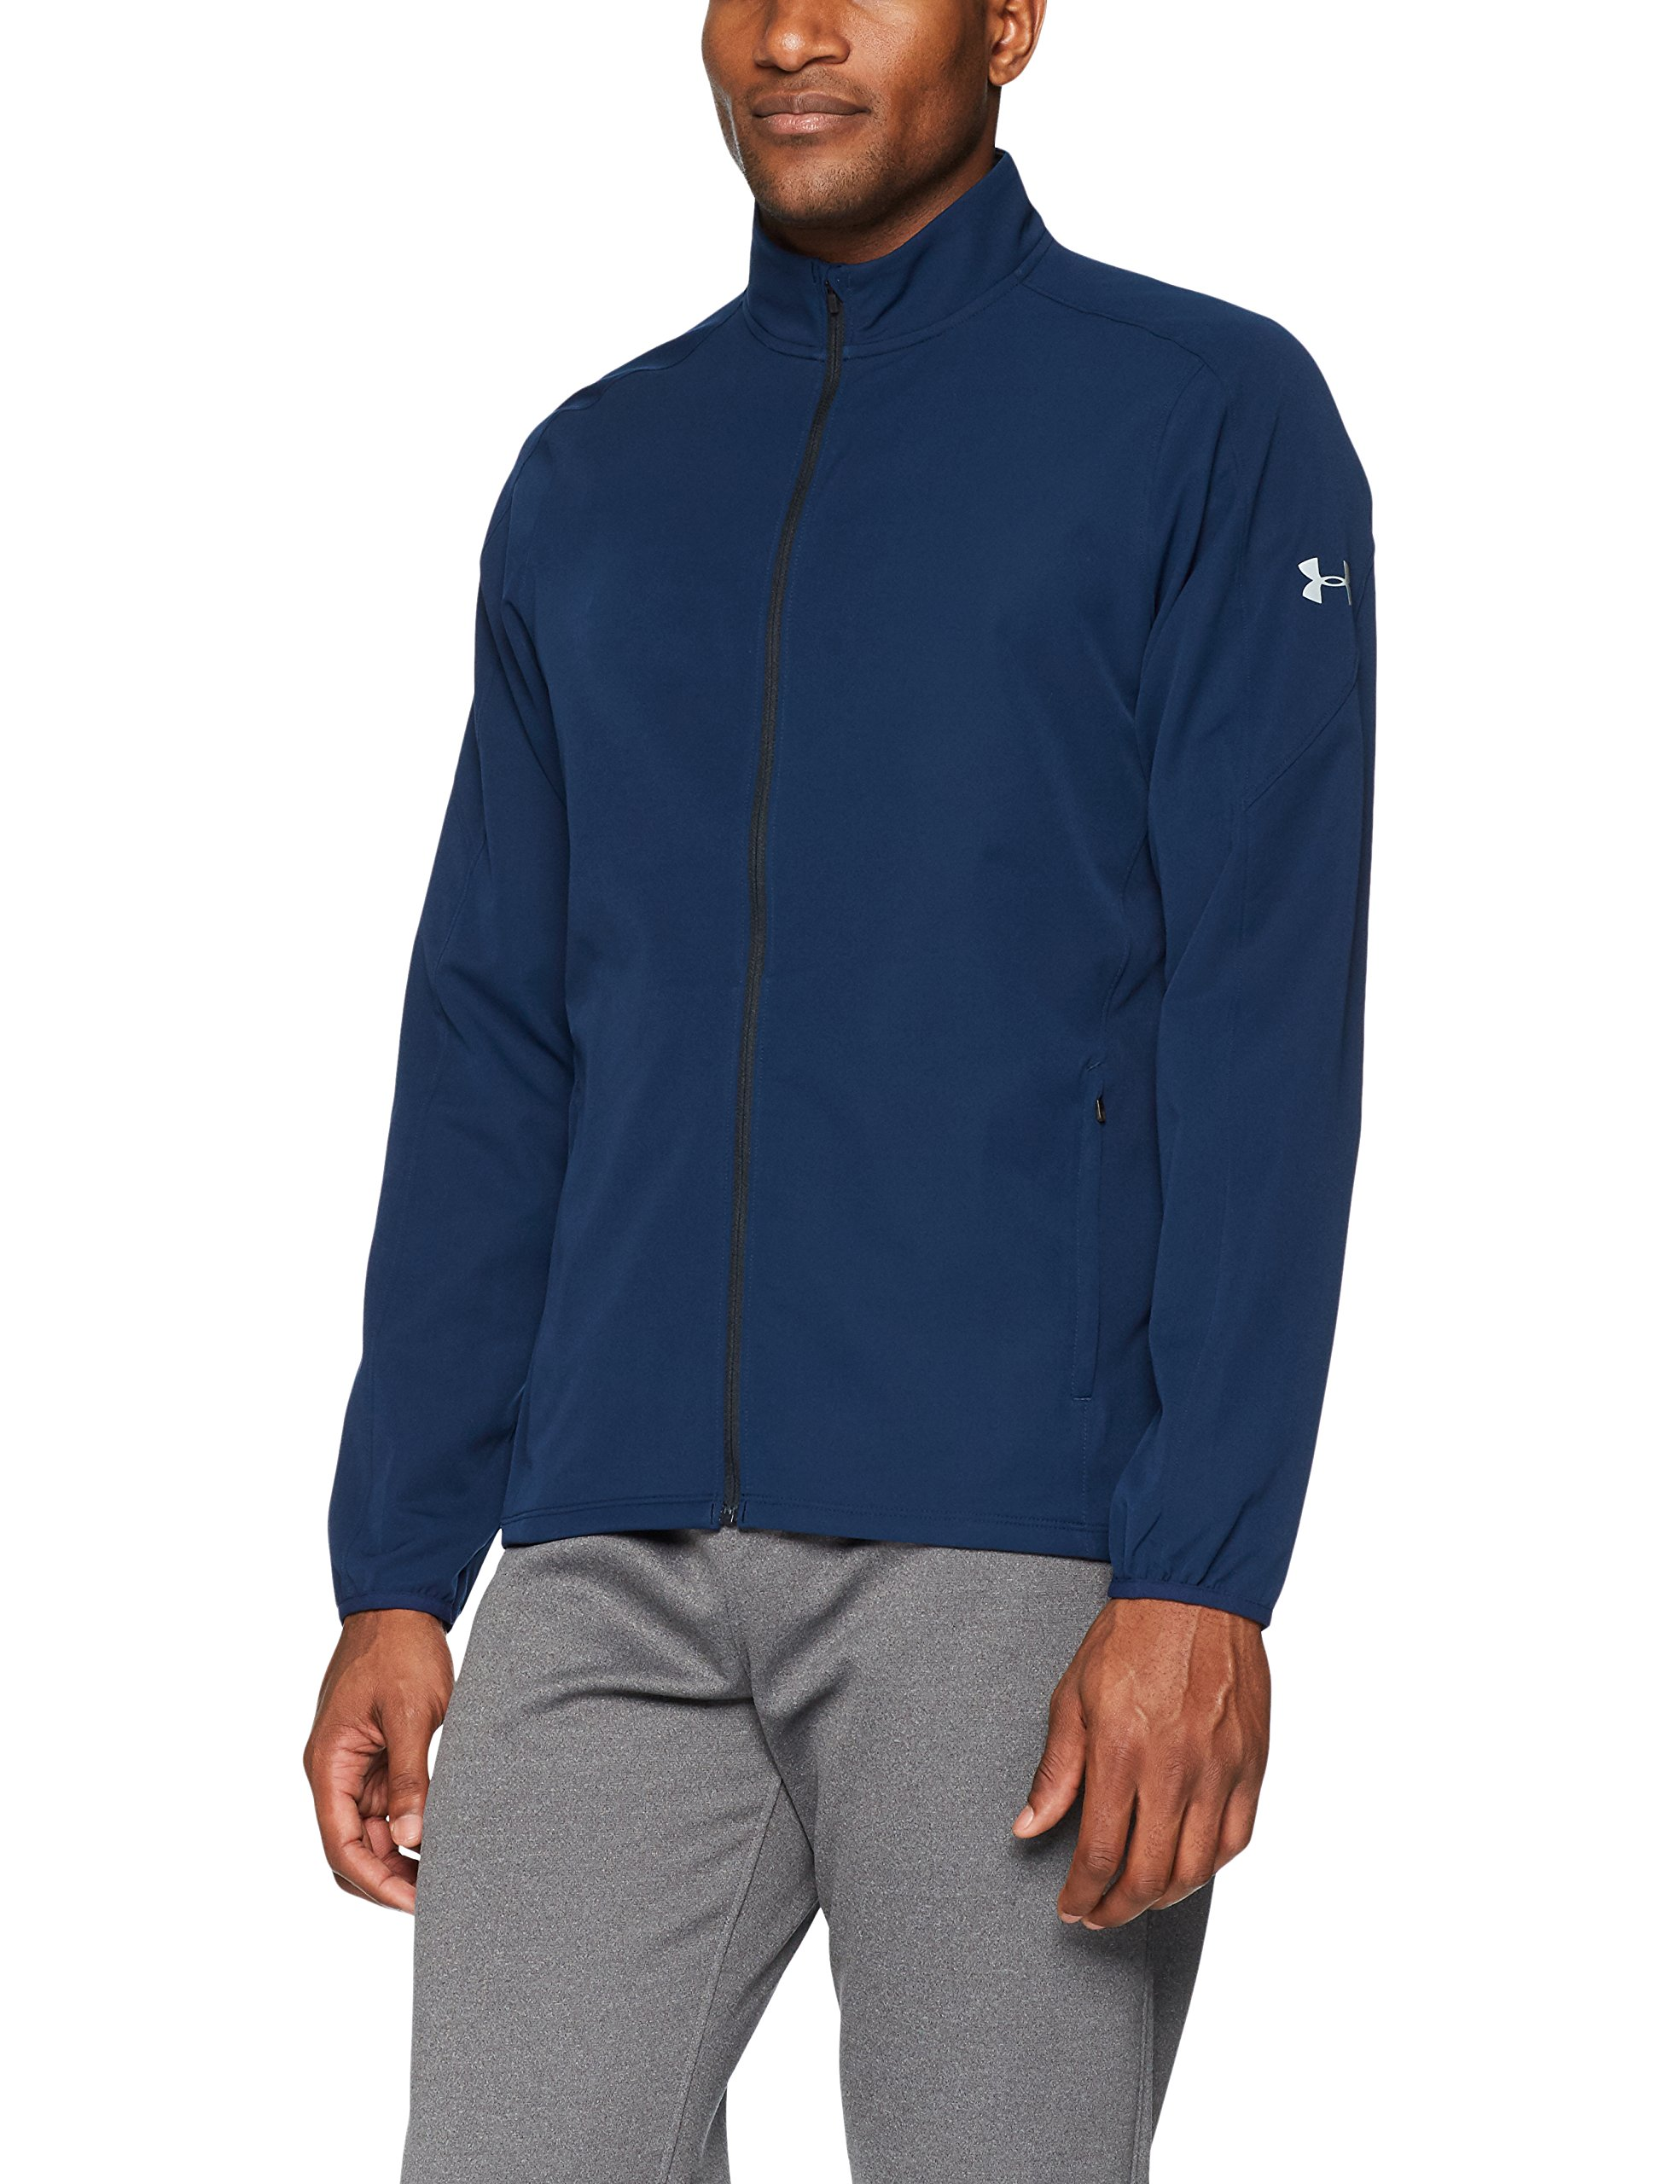 Under Armour Men's Storm Out & Back Jacket, Academy (408)/Reflective, Small